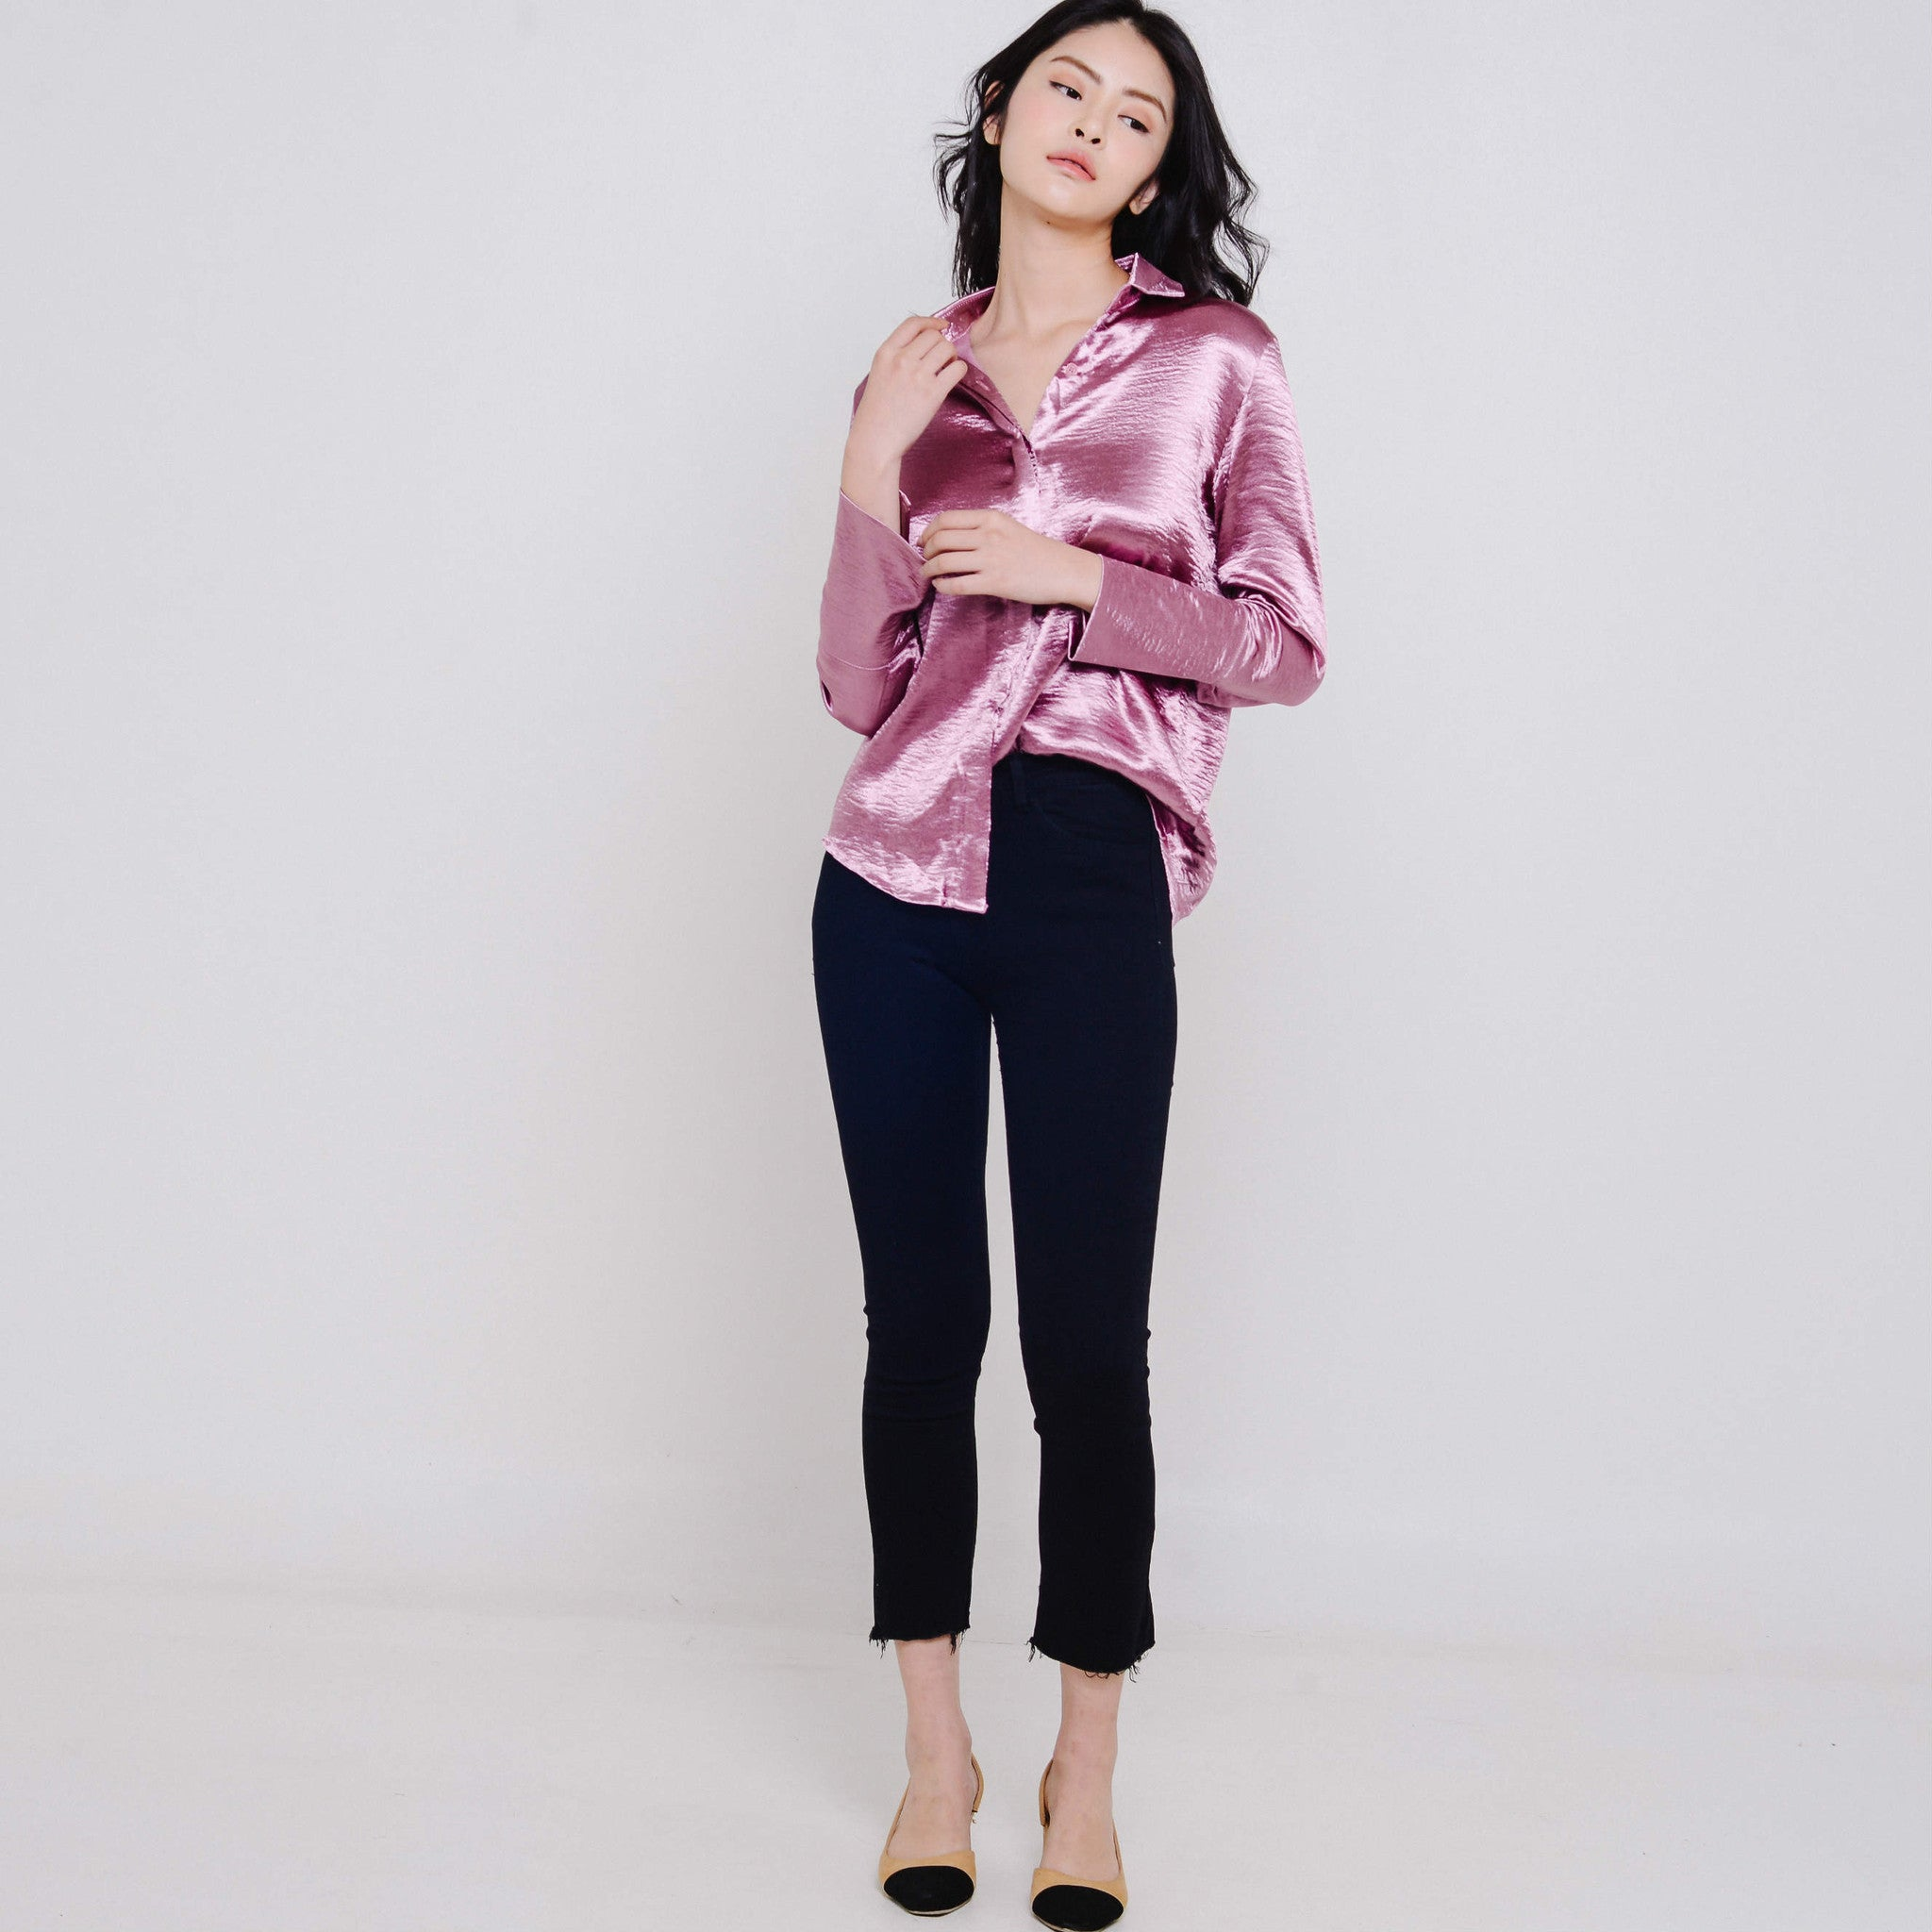 Eden Satin Embroidered Top - Blush Pink